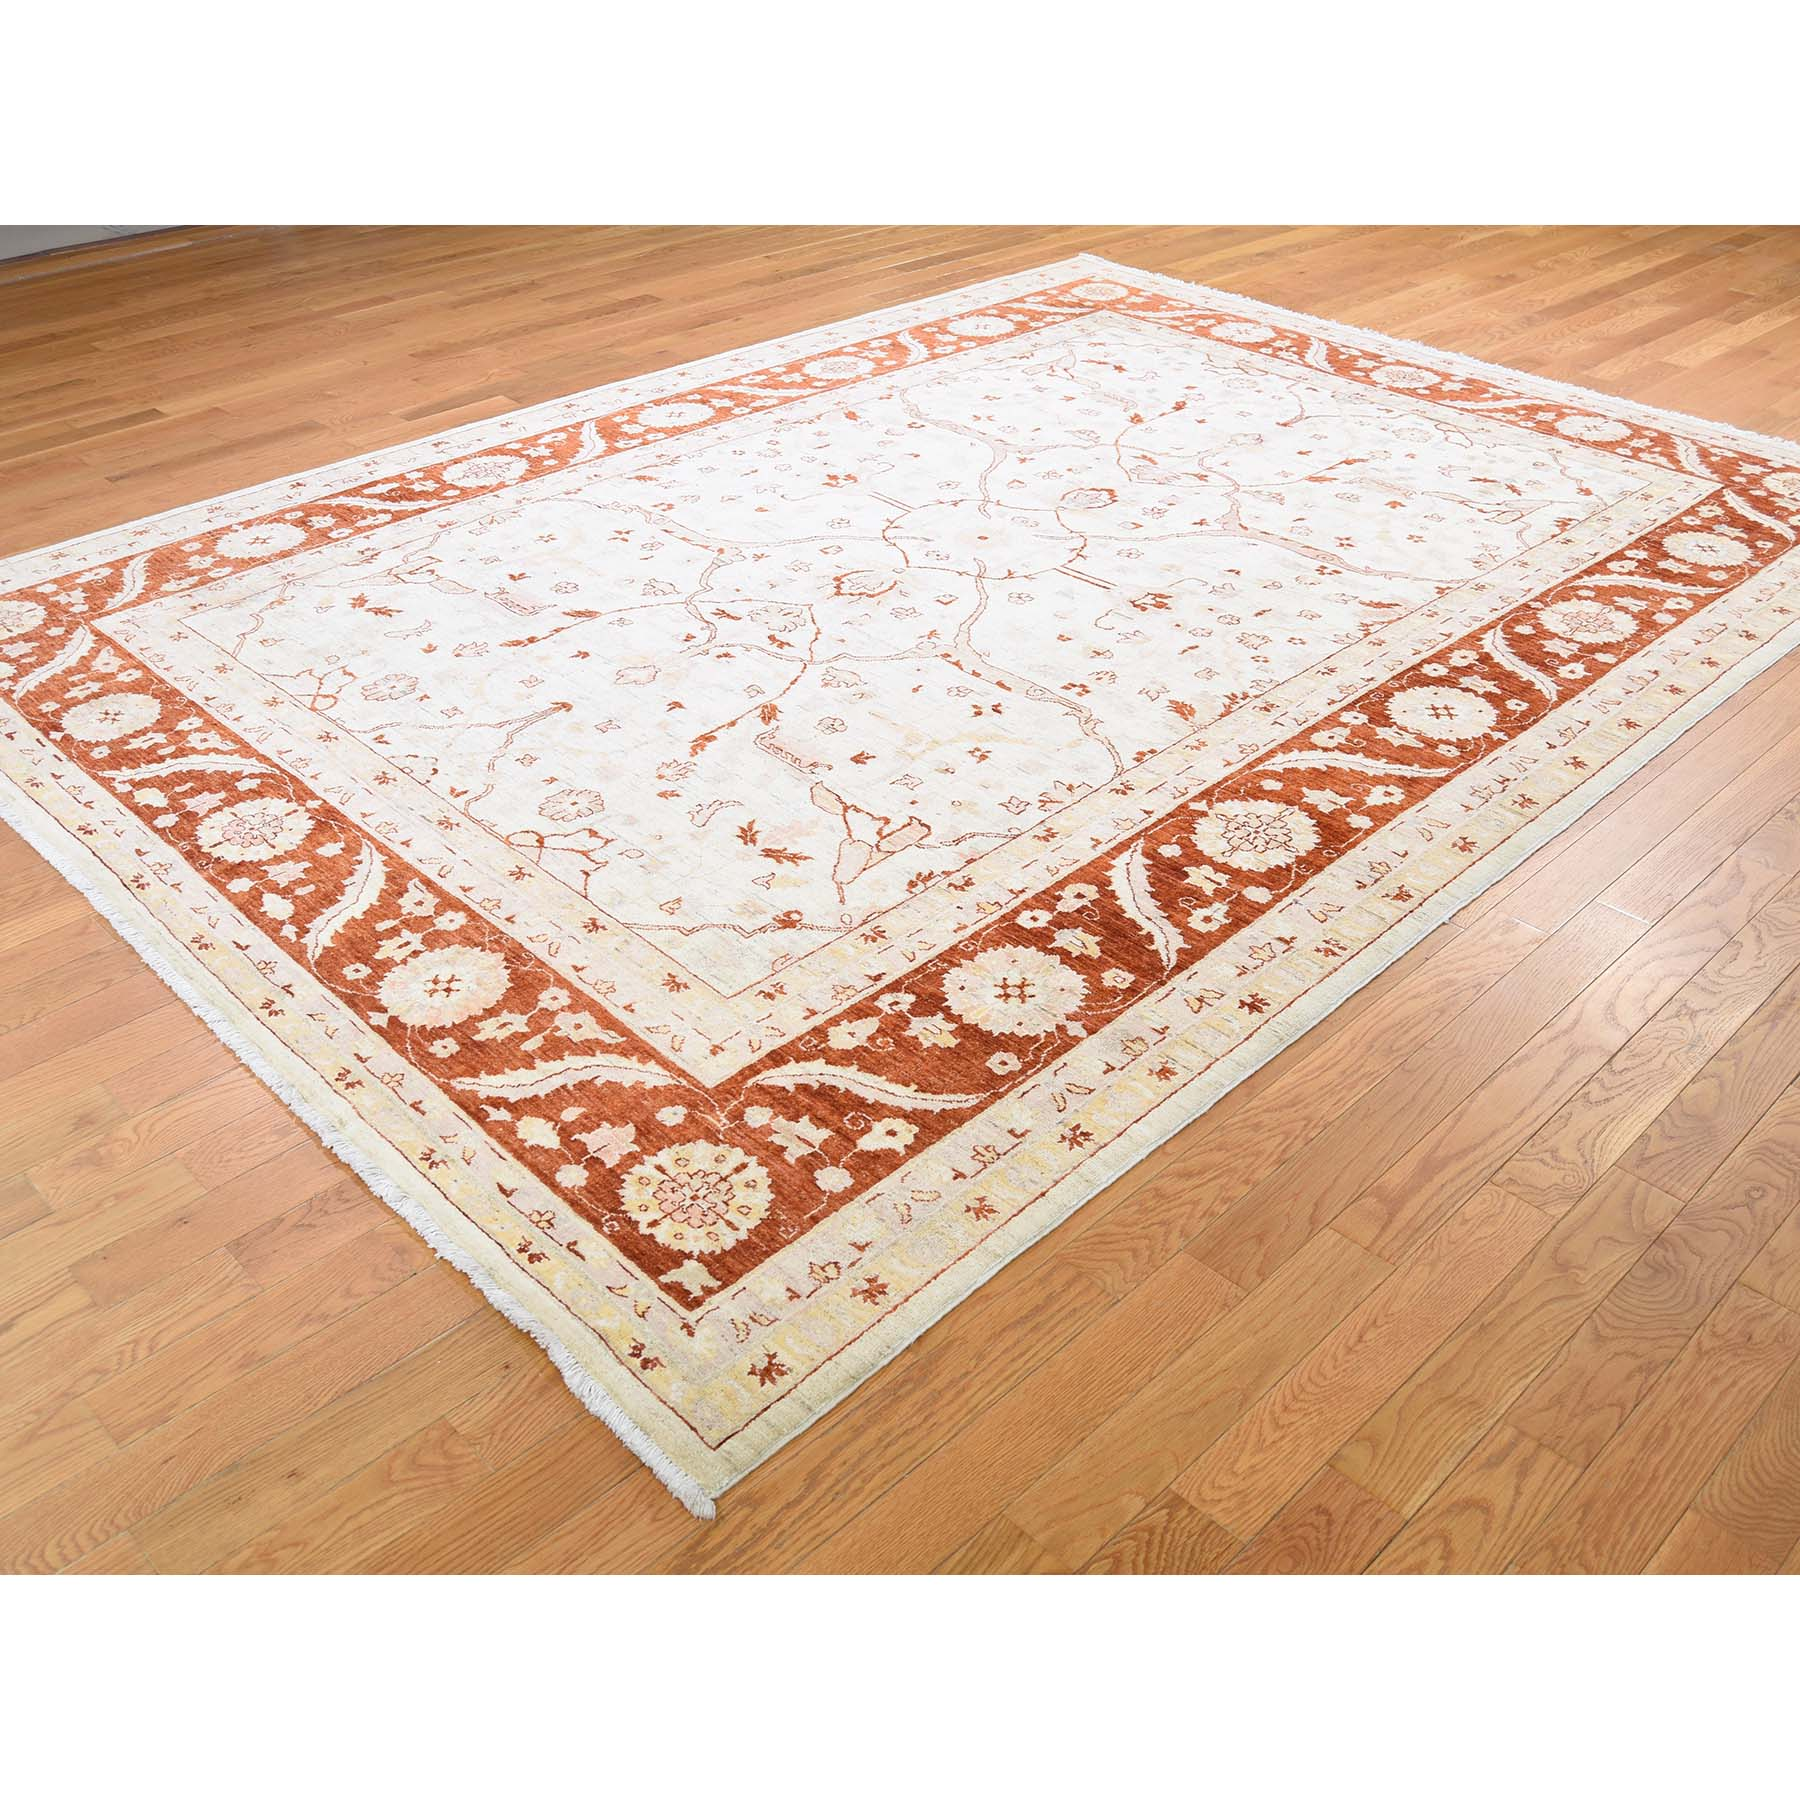 "8'x10'10"" On Clearance White Wash Peshawar Hand-Knotted Pure Wool Oriental Rug"